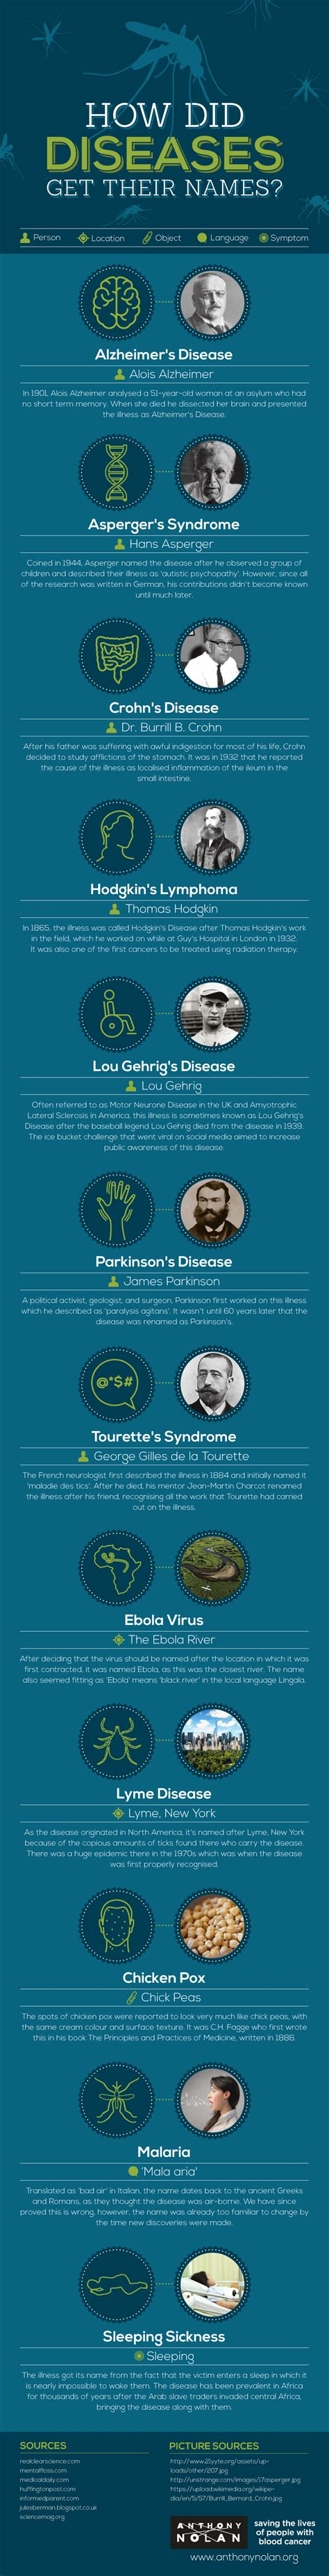 How To Find By Their Name How Did Diseases Get Their Names Infographic Visualistan